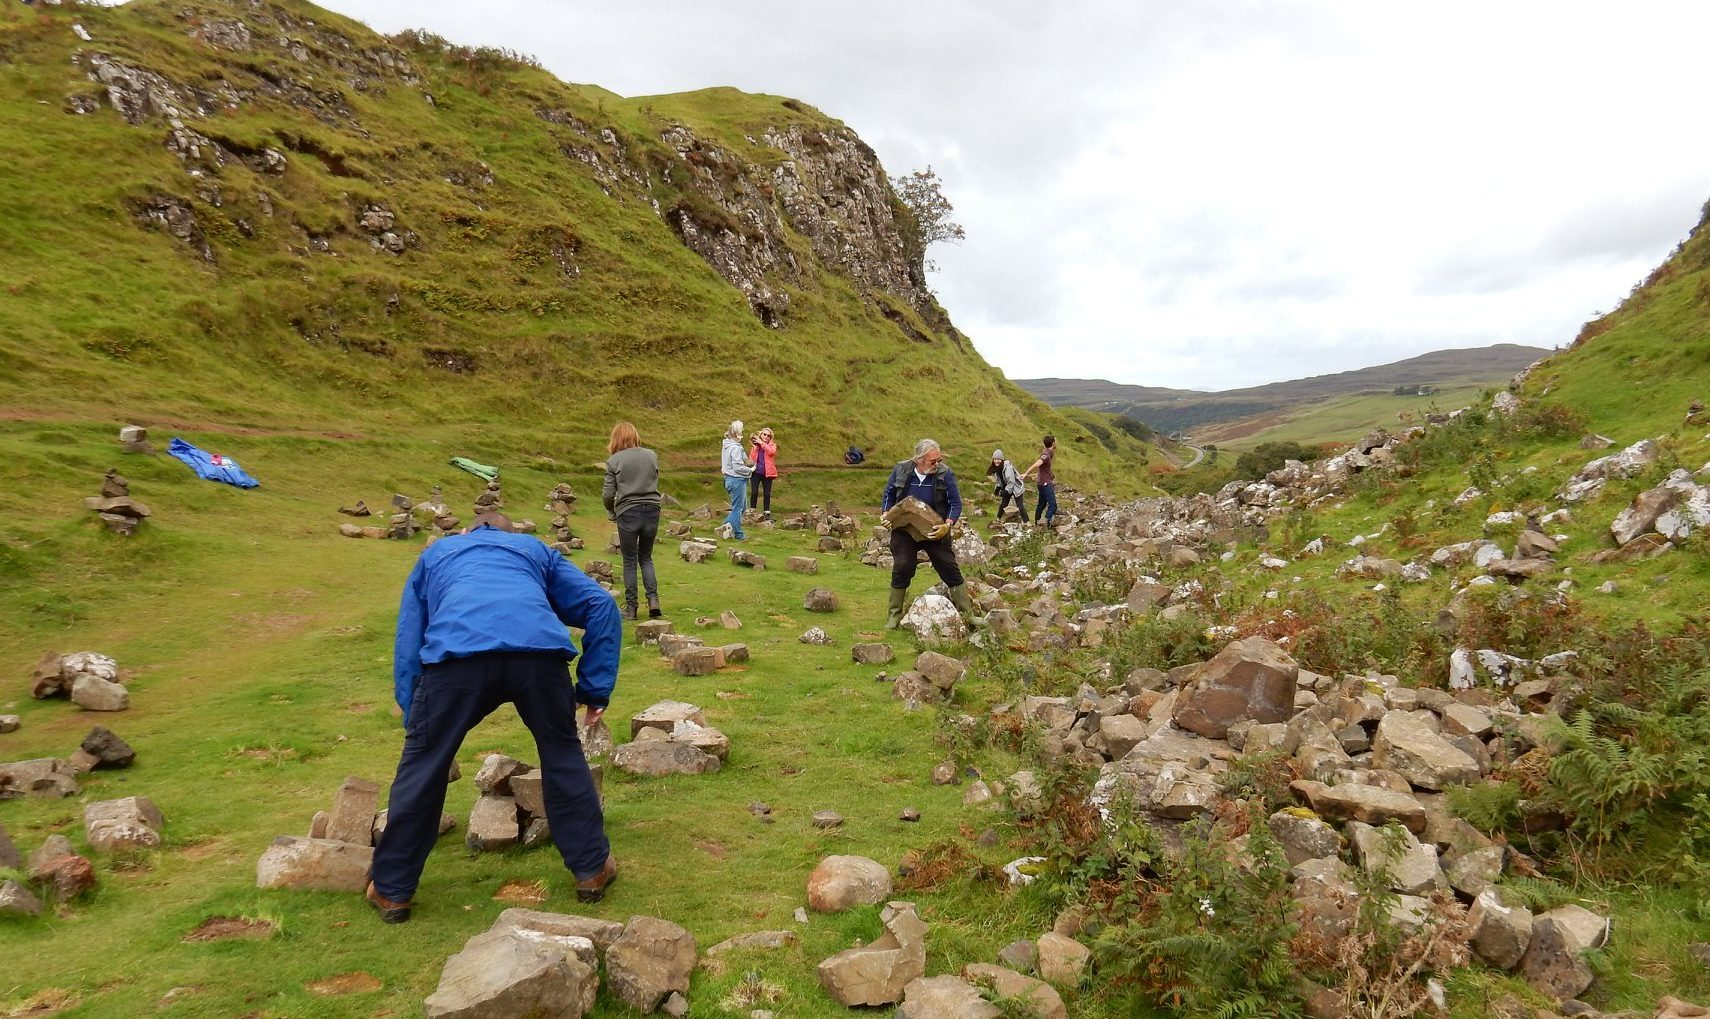 Locals removing the stone stacks left by tourists at the Fairy Glen, Isle of Skye. Staffin, Isle of Skye Facebook page.